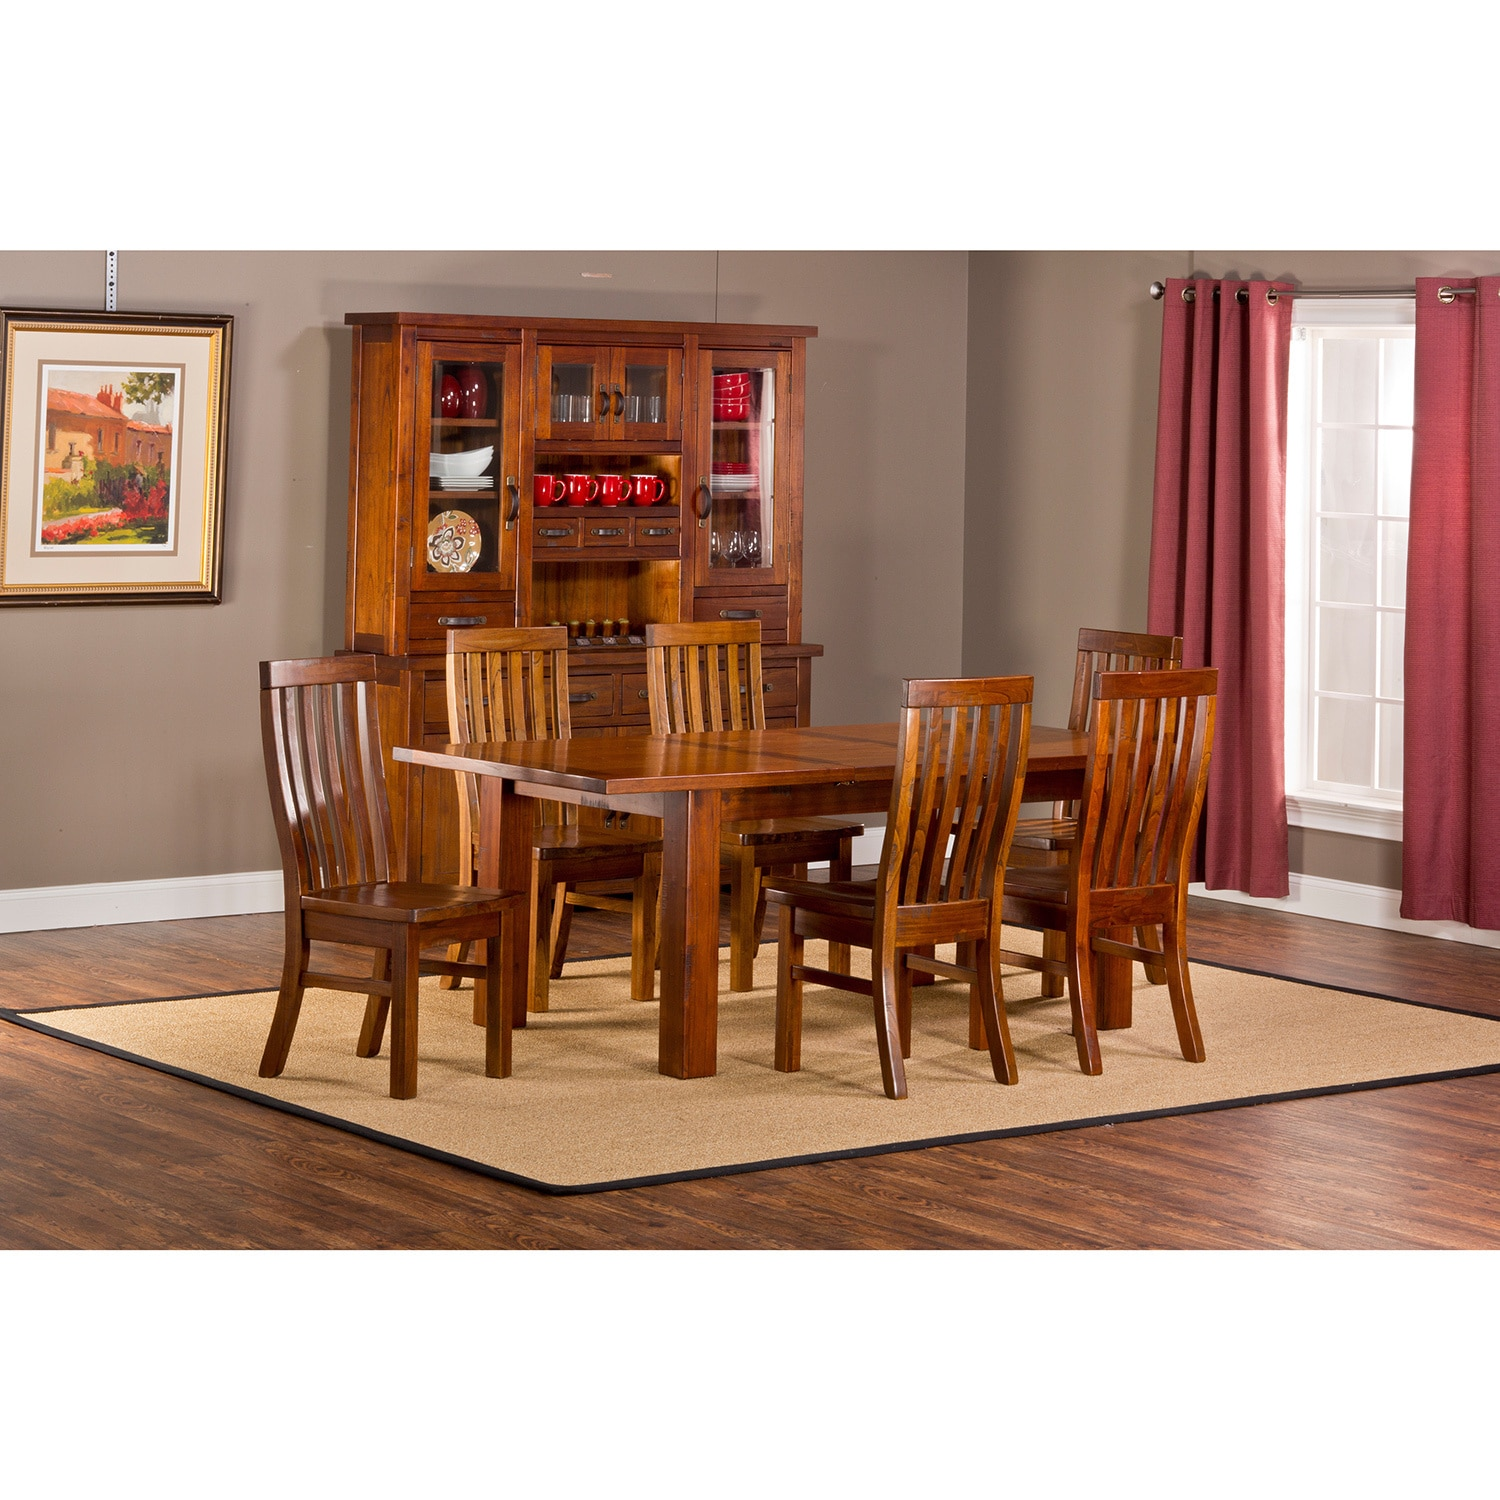 Hillsdale Outback 7-piece Table with Leaf Dining Set (7 P...